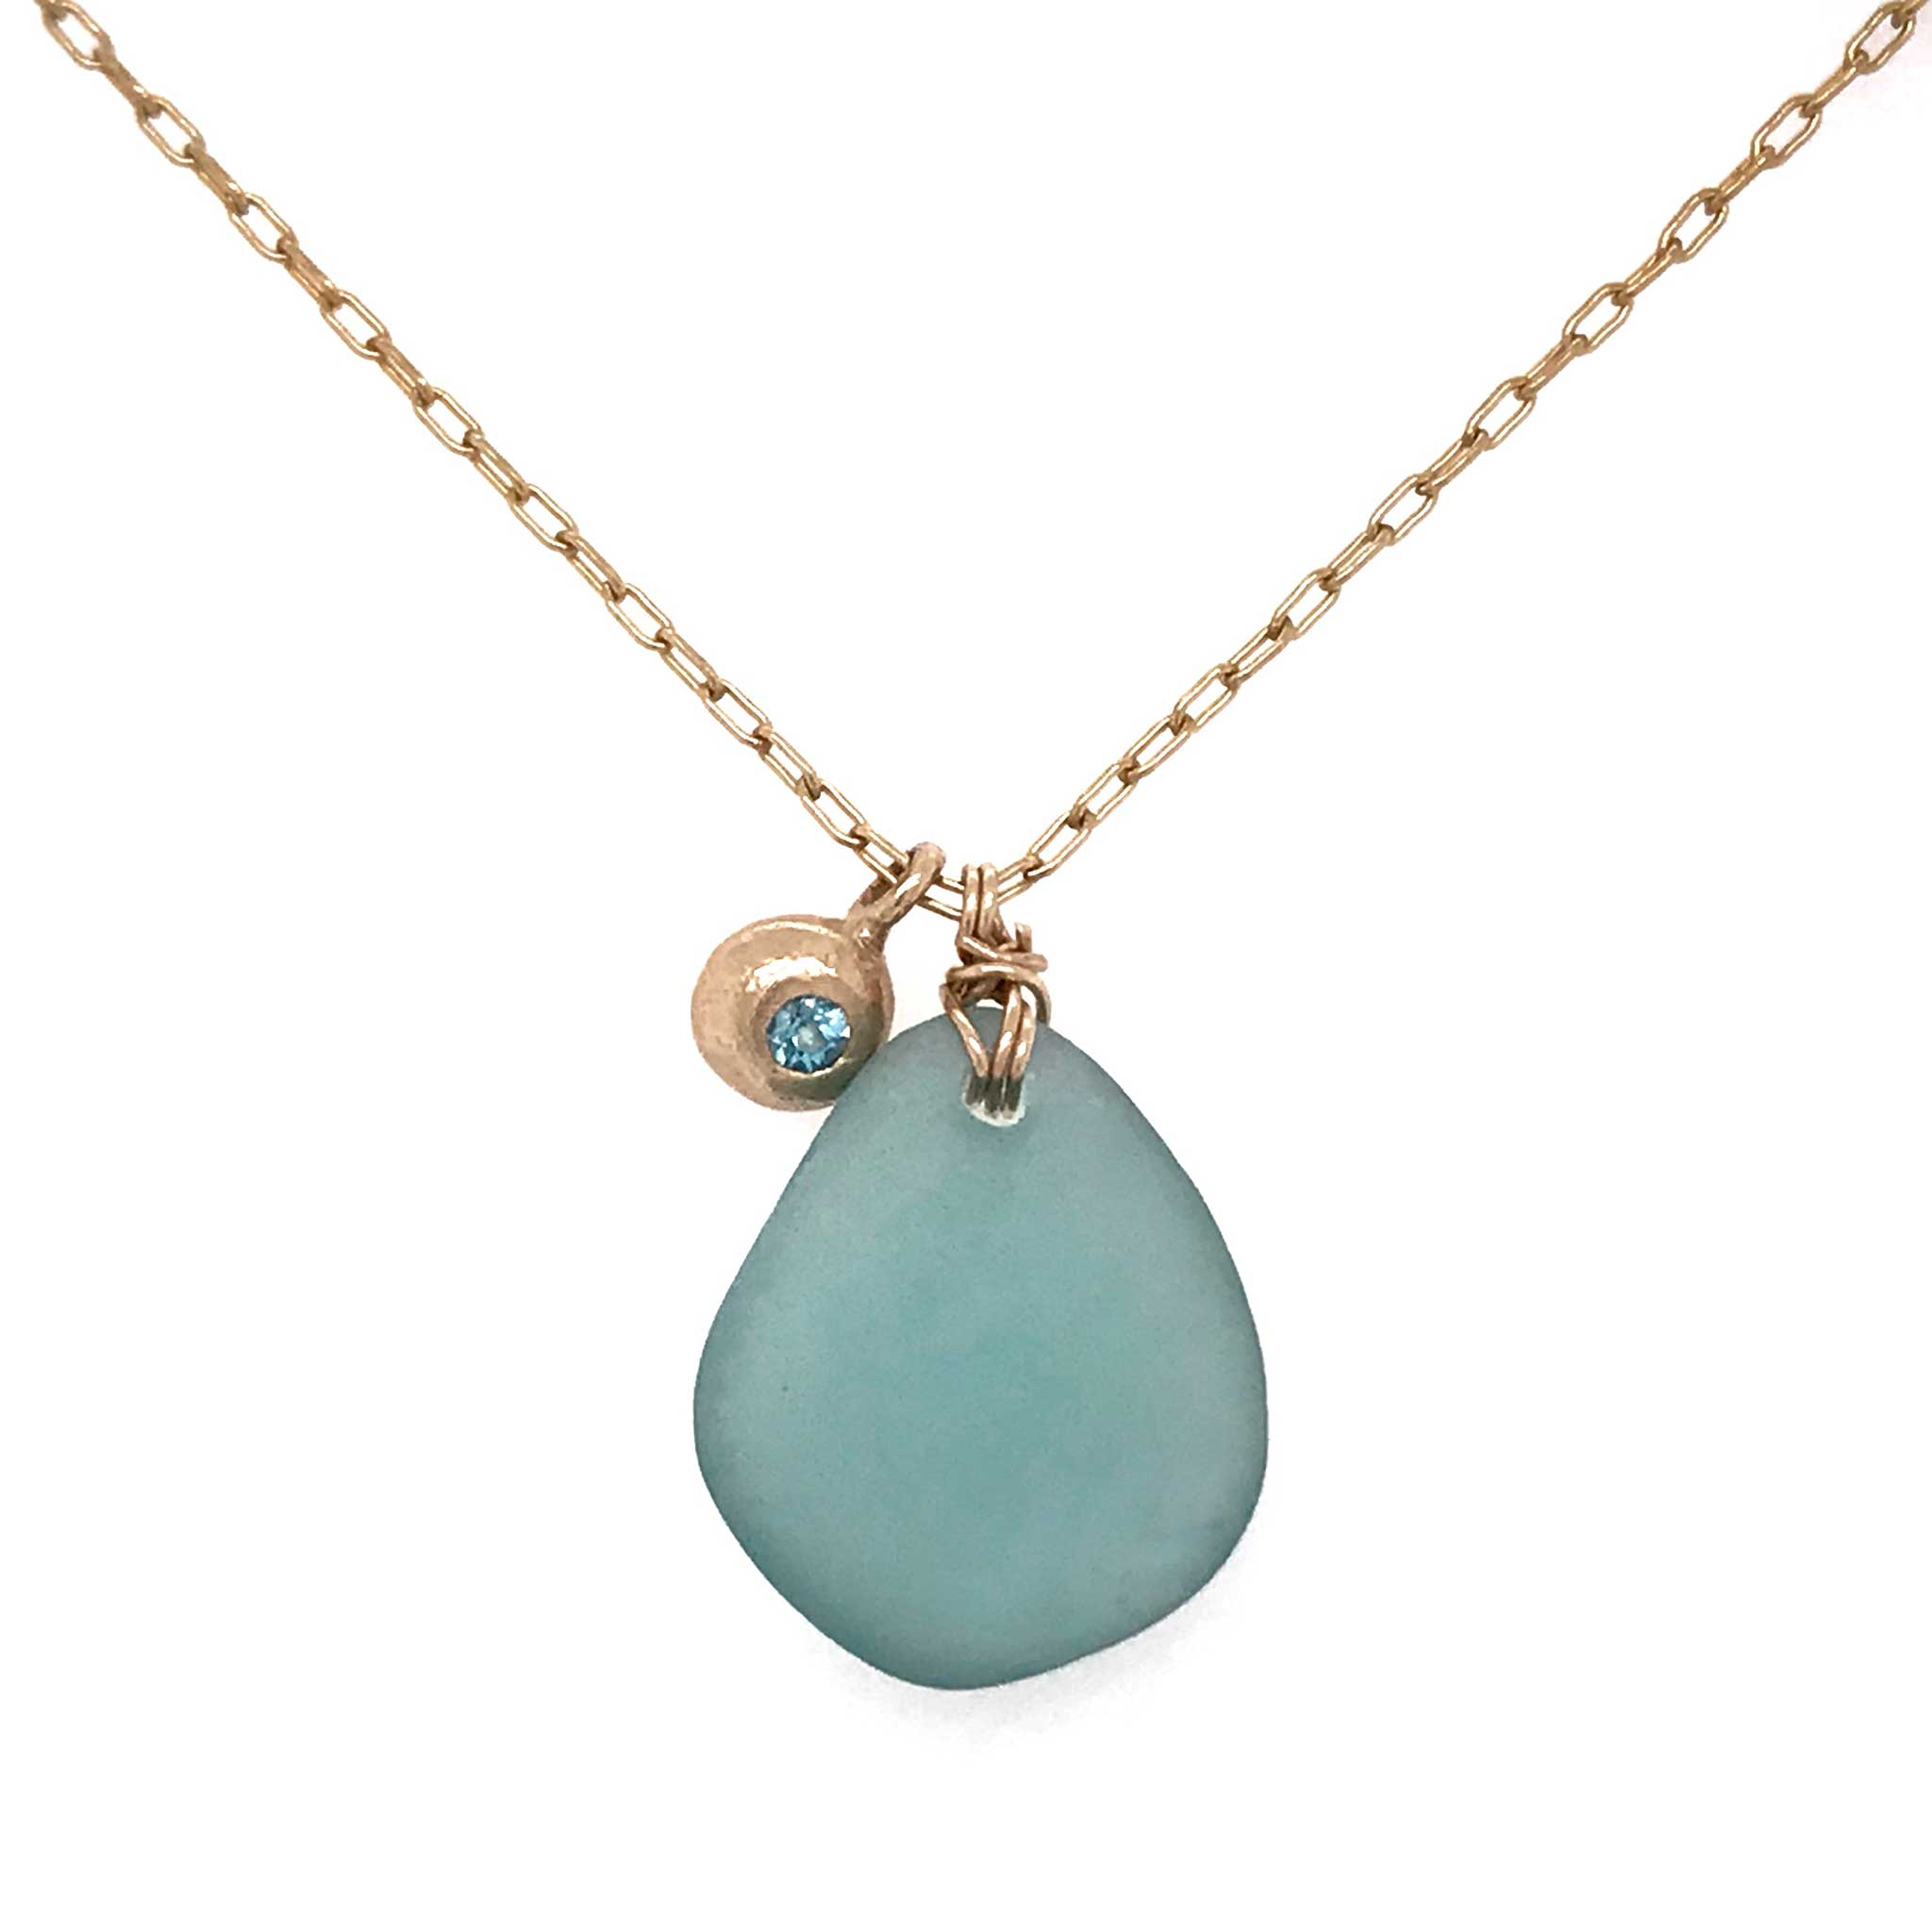 aqua blue beach glass with gold charm and london blue topaz stone kriket broadhurst jewellery gifts for women Sydney